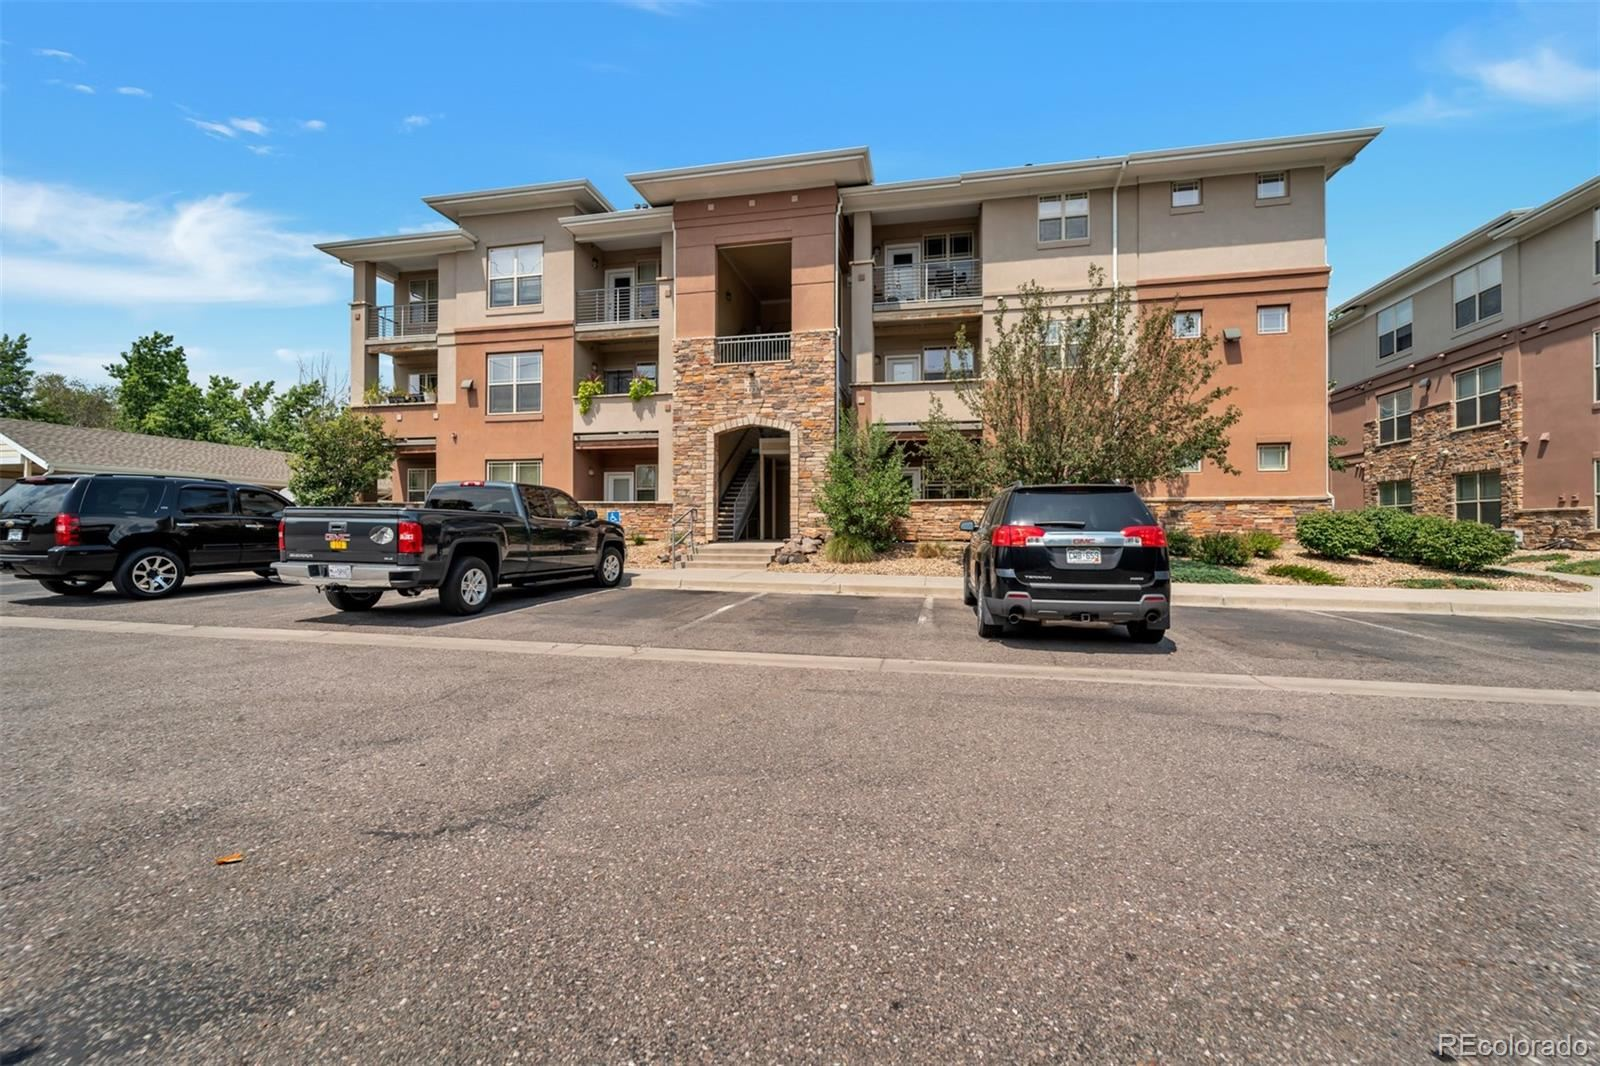 8133 W 51st Place #102, Arvada, CO 80002 - #: 7155280